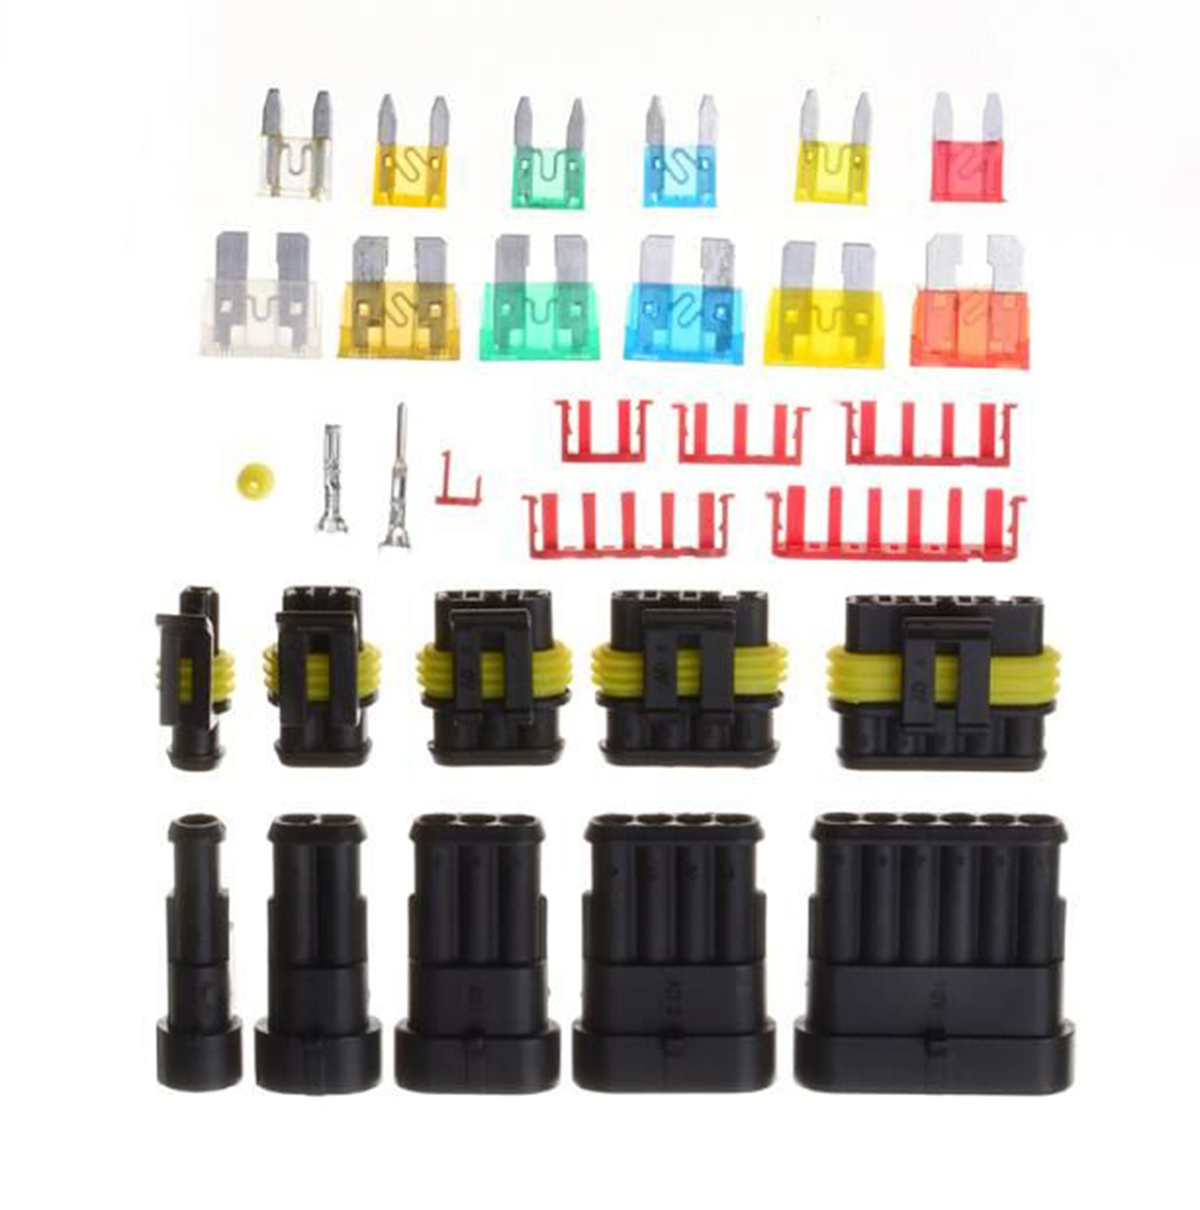 1/2/3/4/5/6 Pin Way Waterproof Electrical Wire Connector Terminals + Automotive Car Blade Fuses with Case 1 sets superseal amp 1 2 3 4 5 6 pin female male waterproof electrical wire cable automotive connector car plug